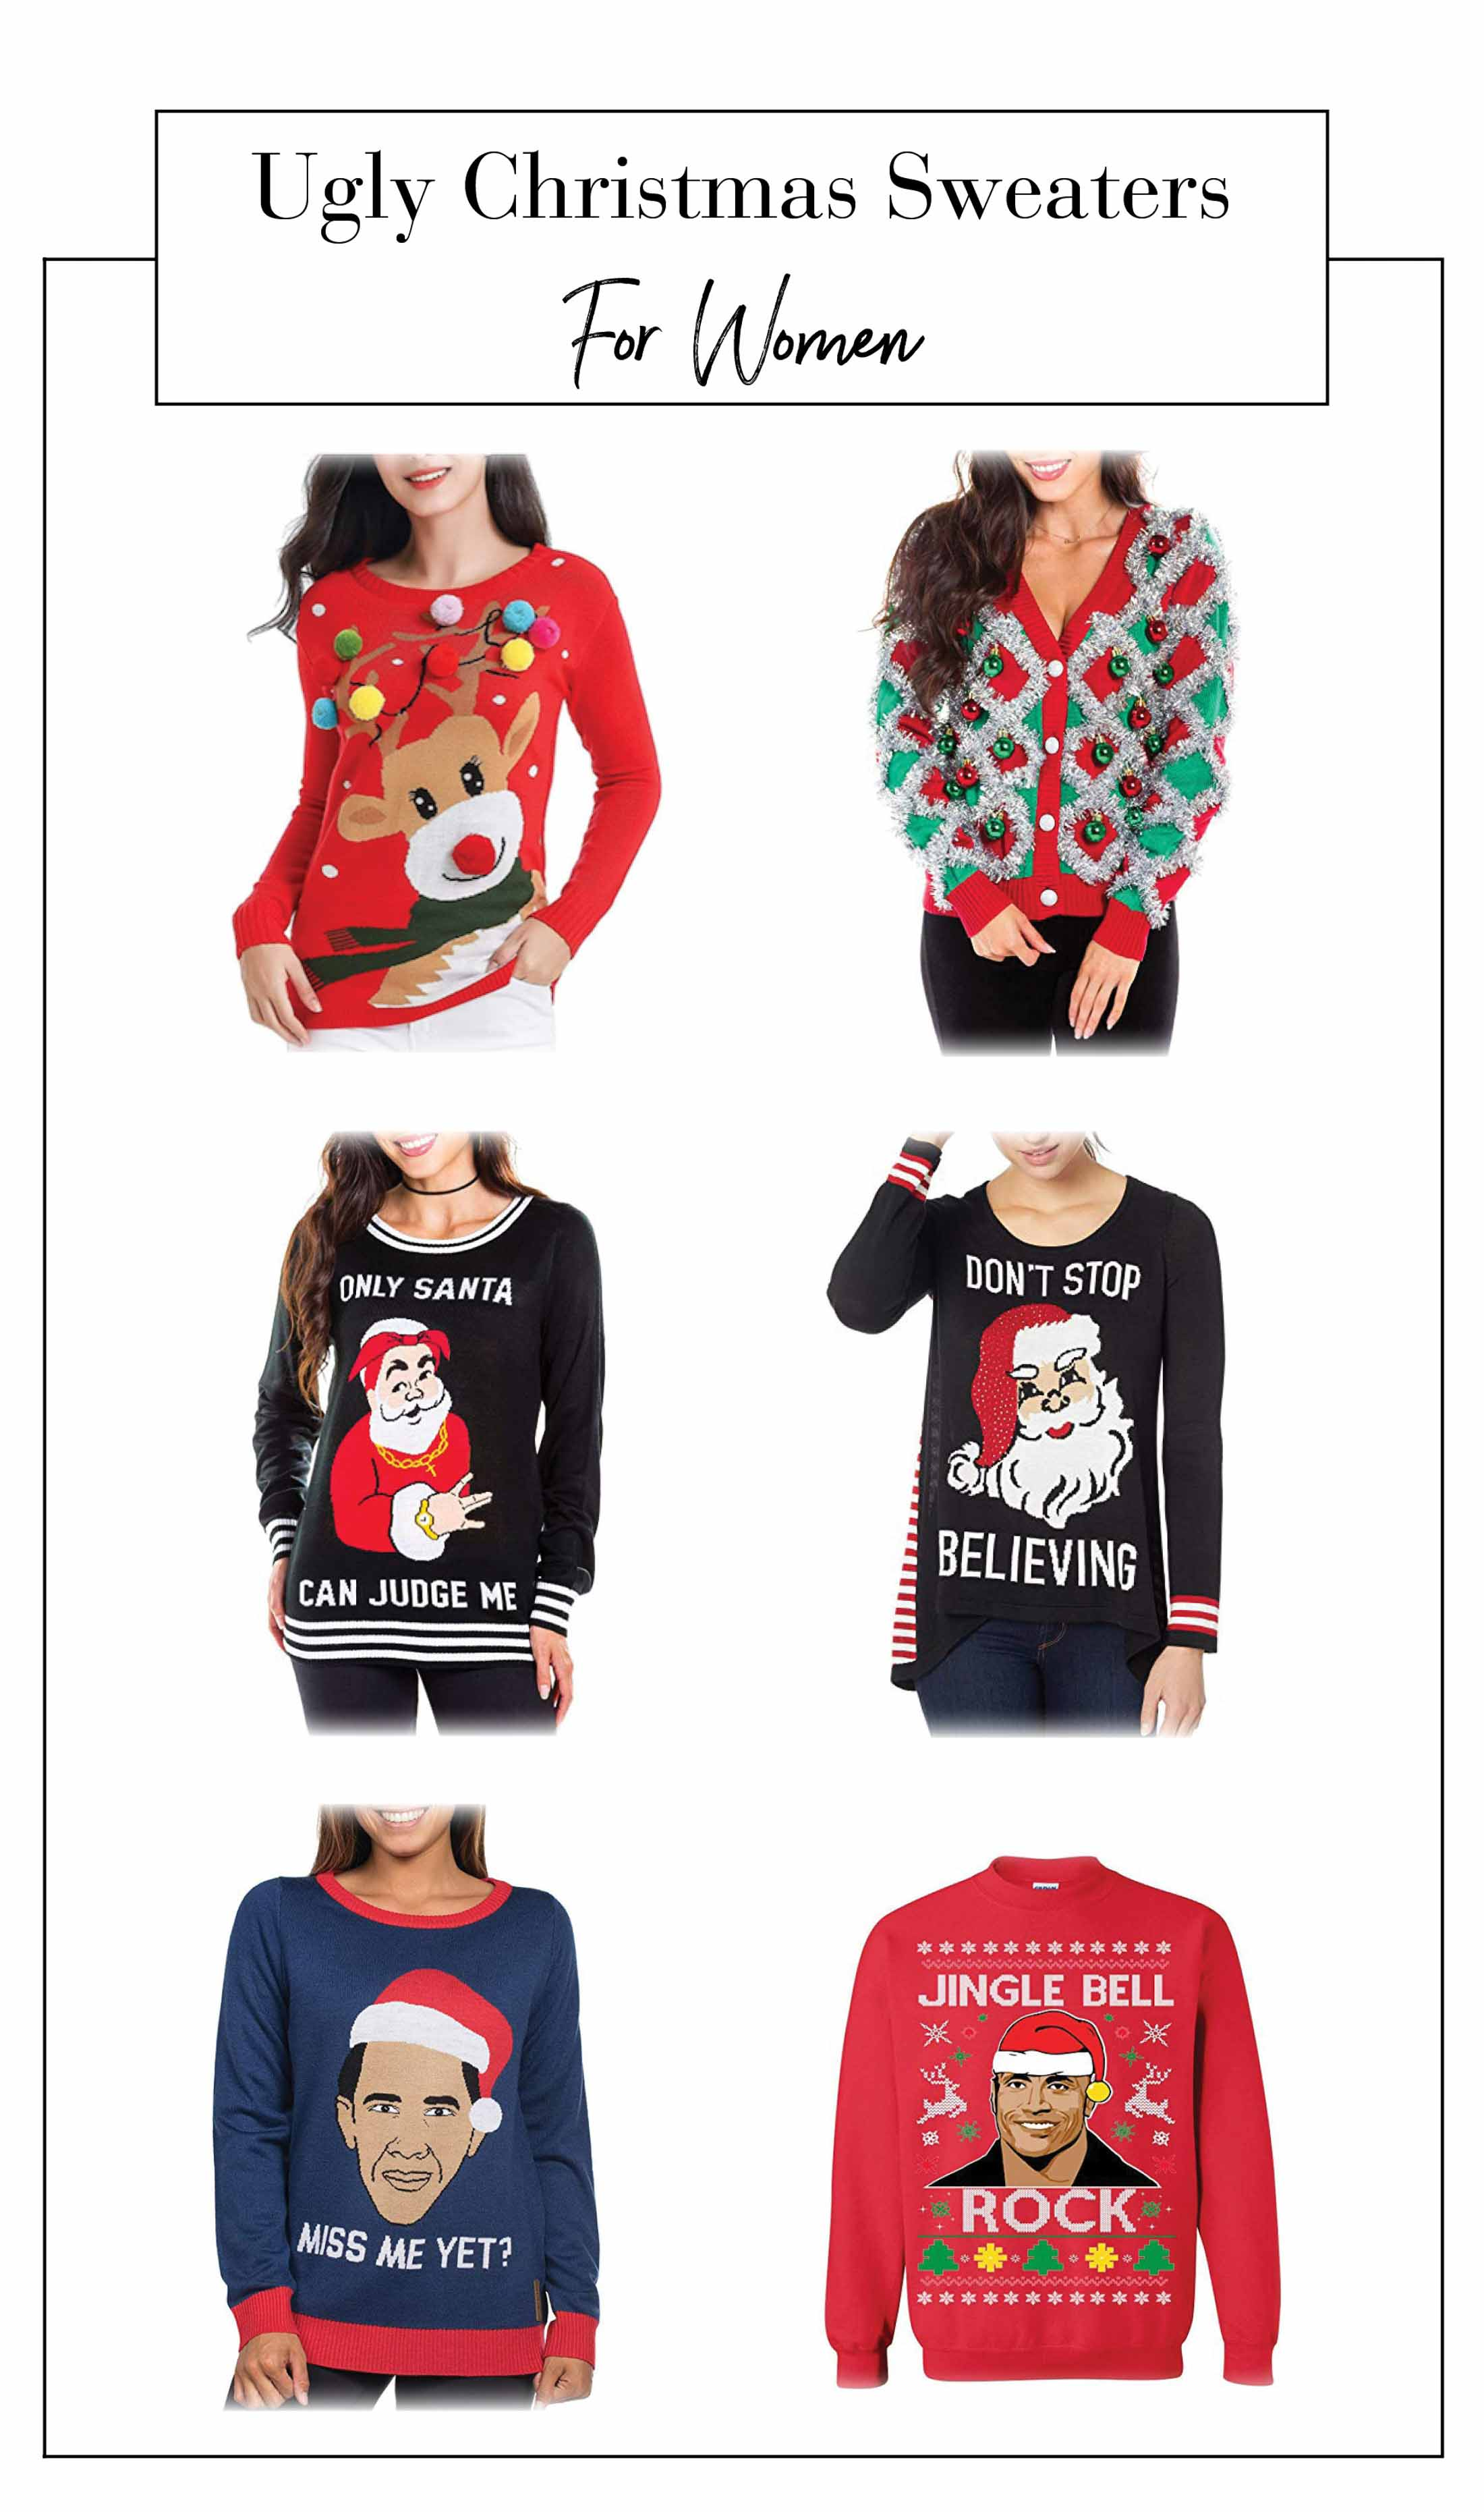 What To Wear To An Ugly Christmas Sweater Party For The Whole Fam